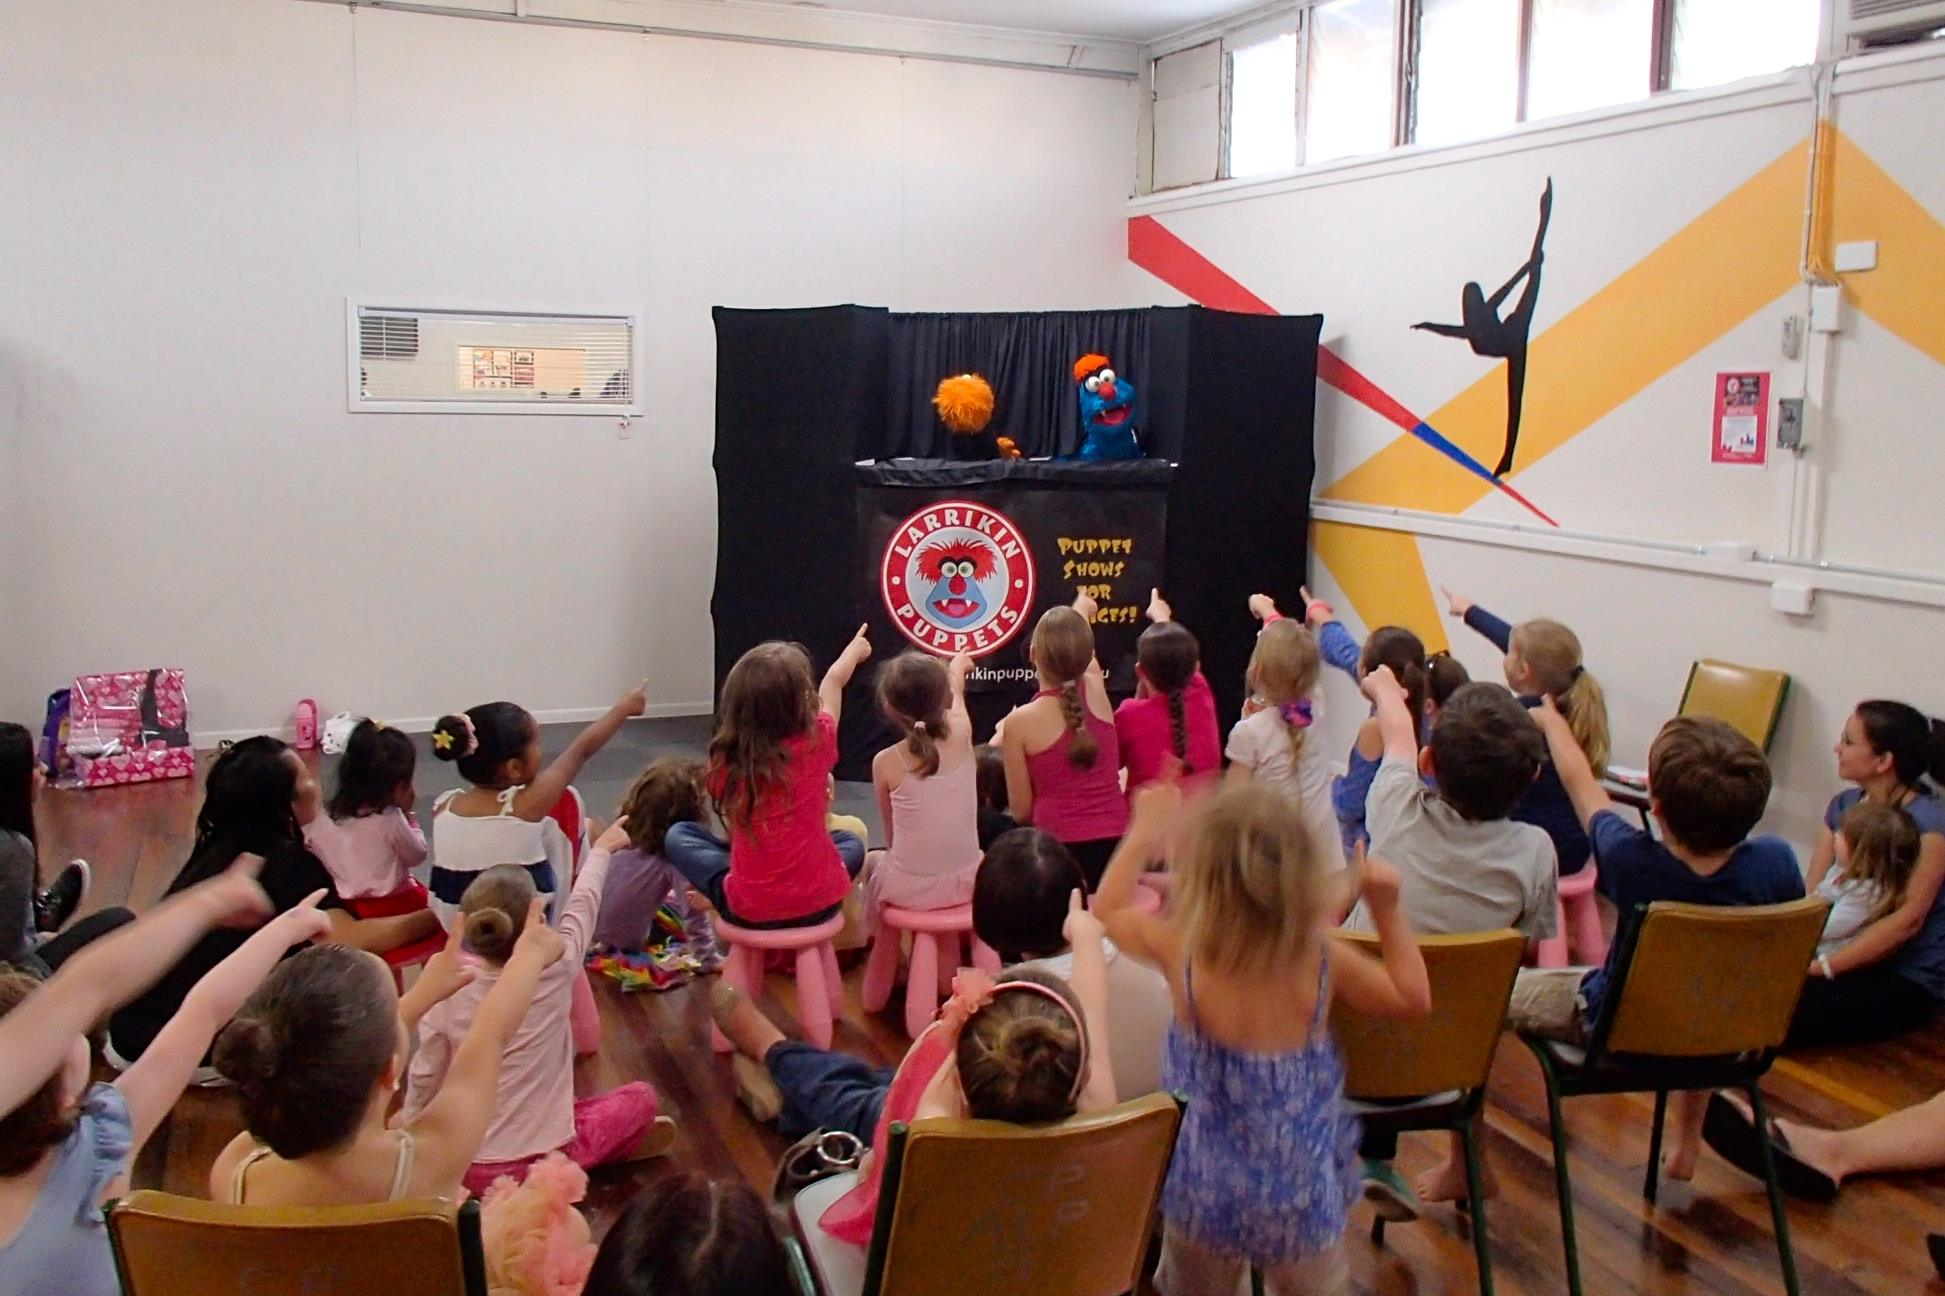 Children's Entertainment, Children's Entertainers, Party Entertainment For Hire | Puppet Show, Puppetry Workshops - Vacation Care OSHC, Moorooka Salisbury